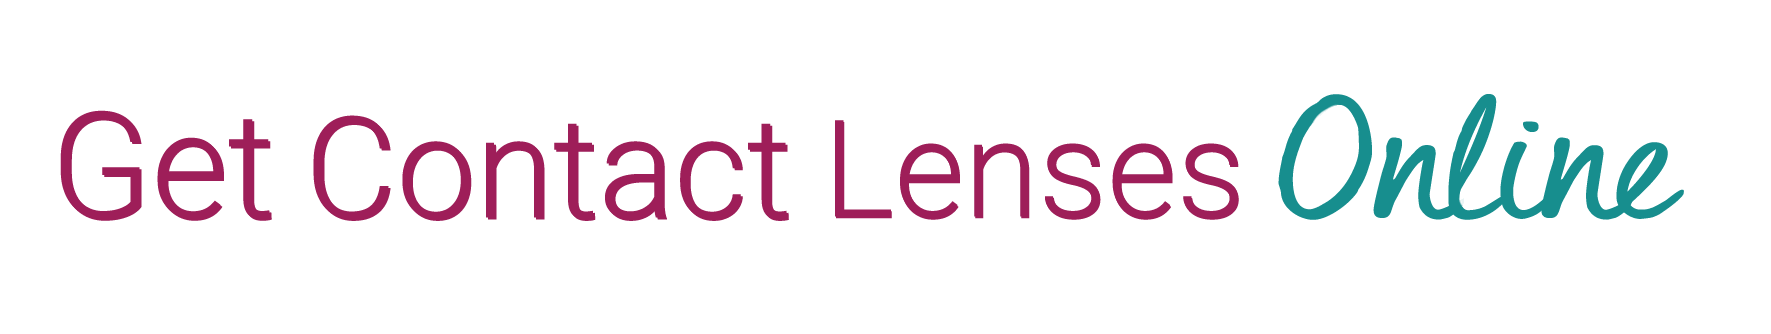 Get Contact Lenses Online